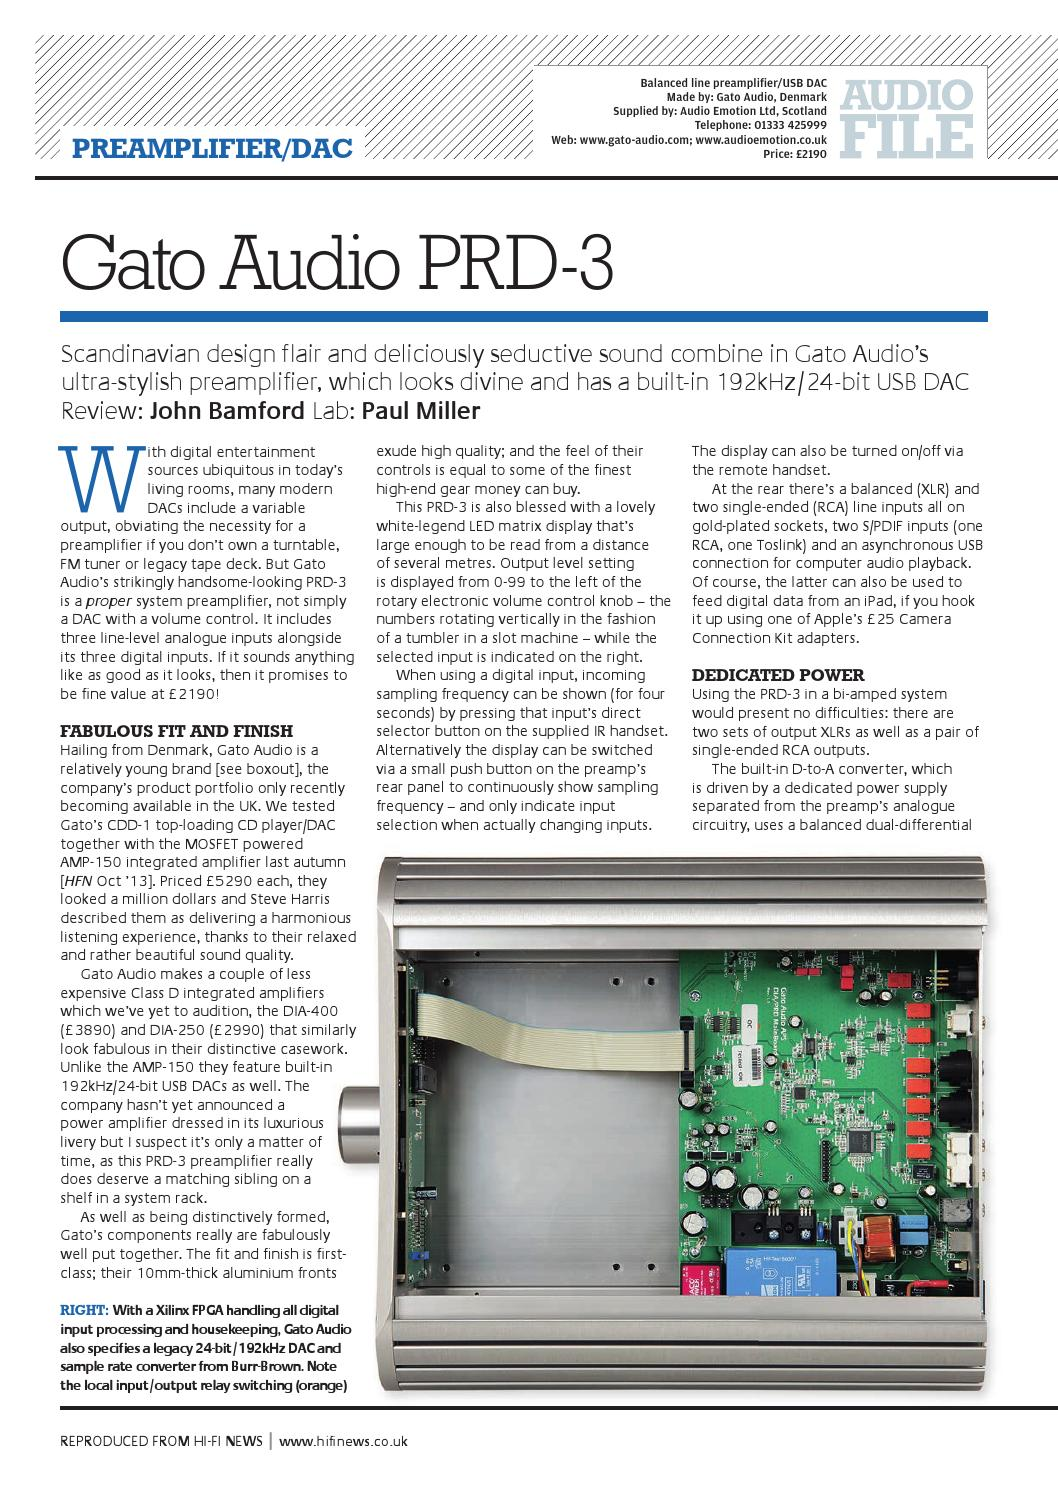 Low Noise Power Supply For Audio Circuits Gato Prd 3 Preamp Hifi News Review By Emotion Issuu